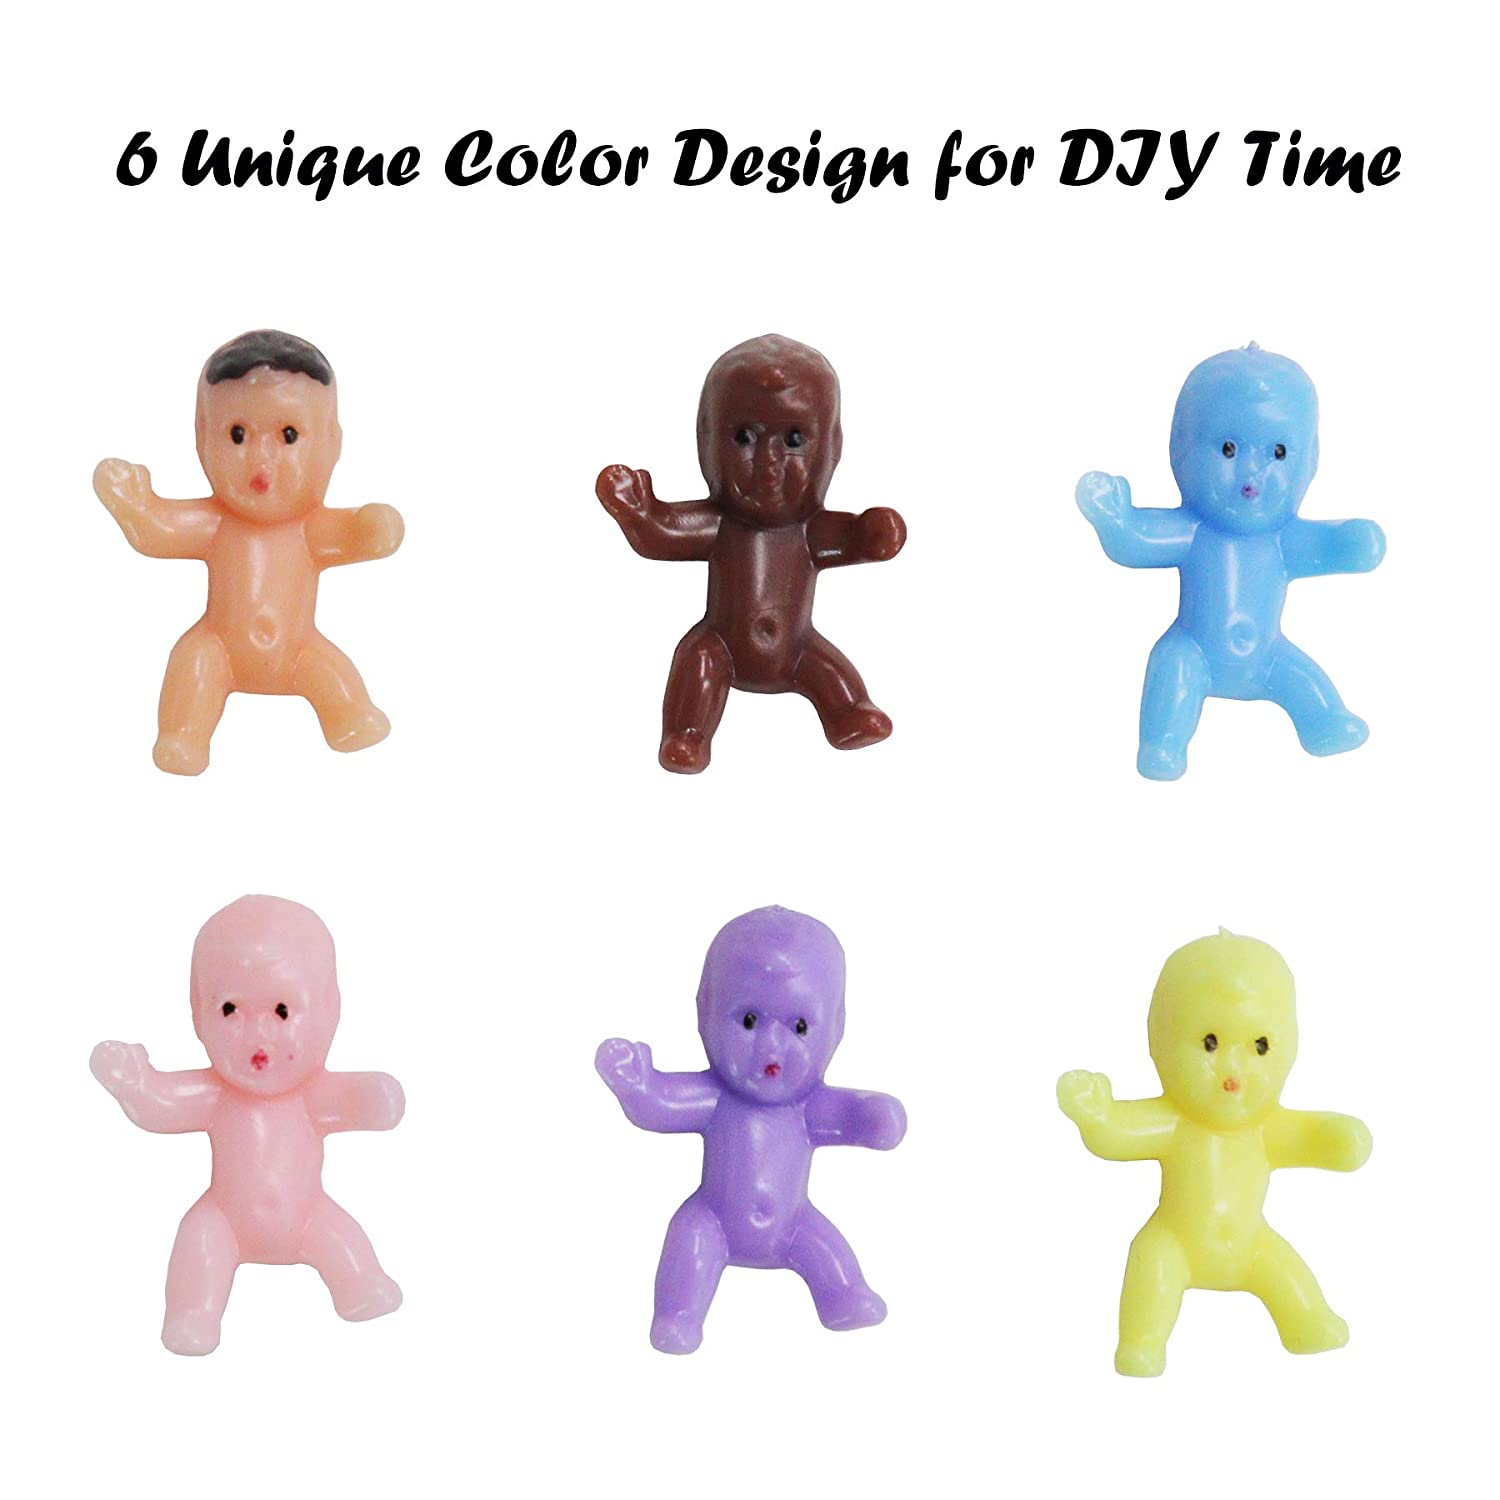 120 Pcs Mini Plastic Babies 6 Colors Mini Baby Dolls for Ice Cubes Baby Shower Party Decorations Baby Bathing and Crafting 1 Inch